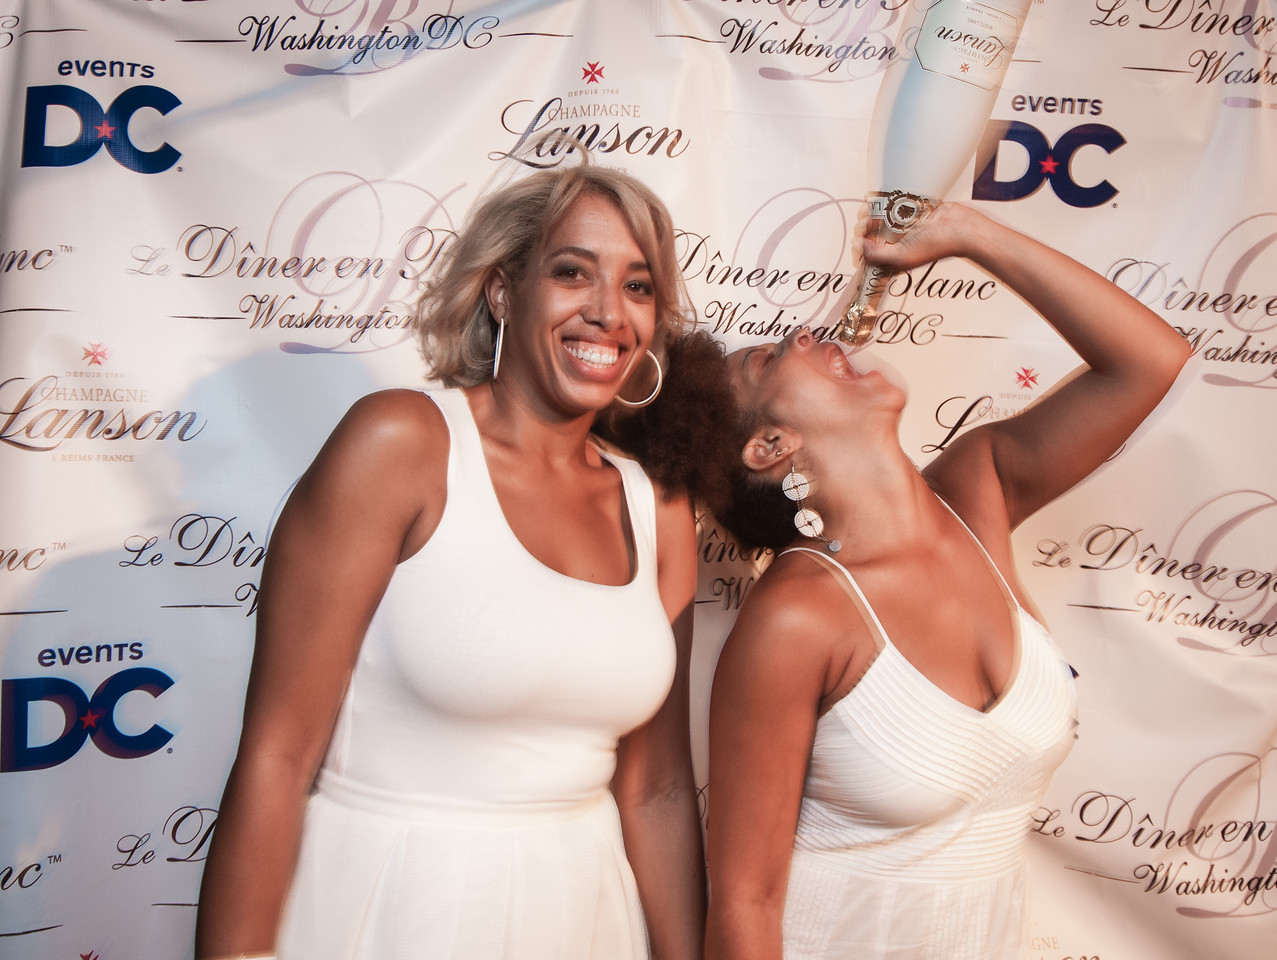 Diner en Blanc DC 2015 Photo Booth